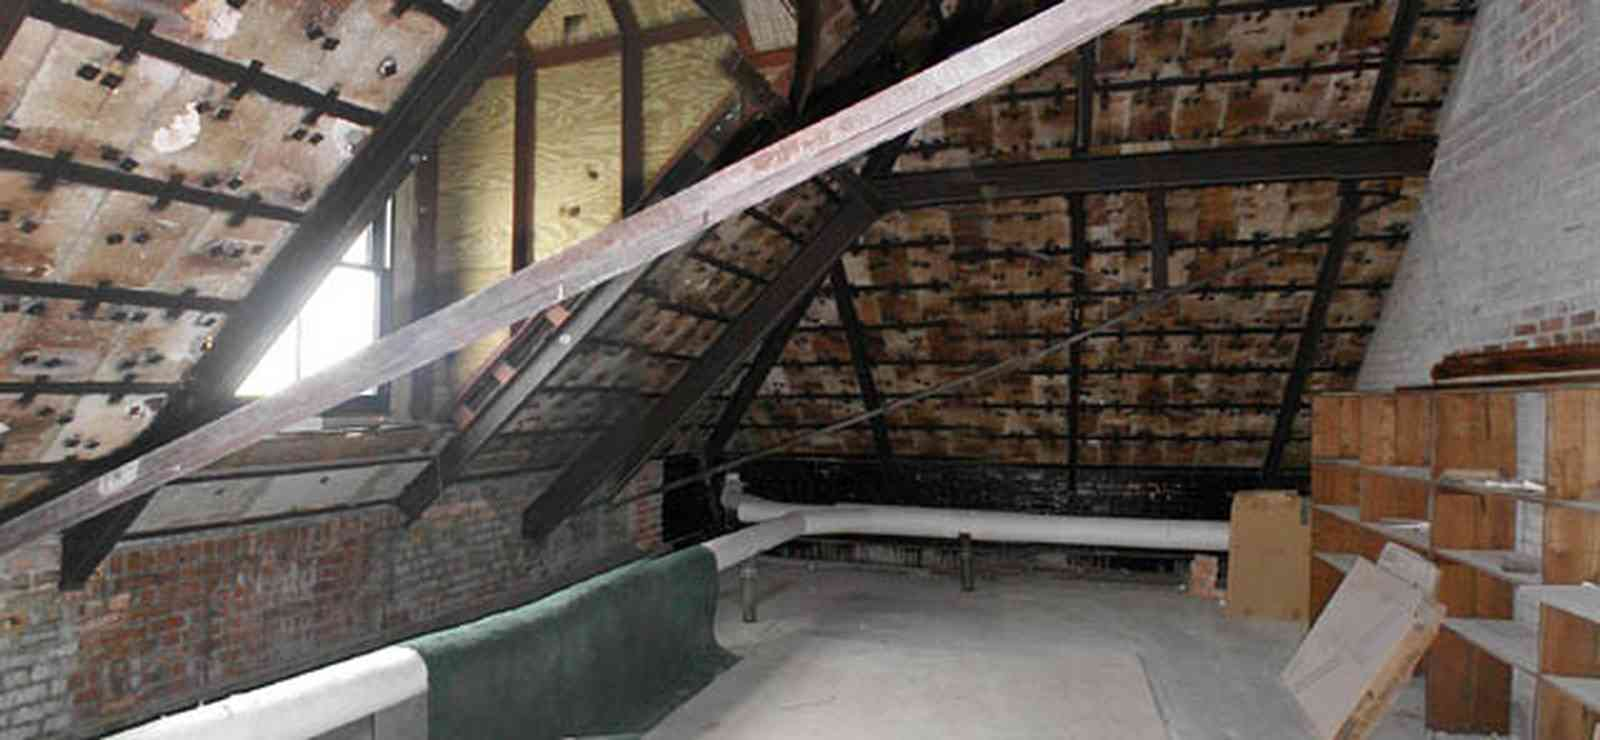 Pensacola:-Palafox-Historic-District:-Escambia-County-Courthouse_14.jpg:  attic, roof tiles, metal spring tension braces, brick walls